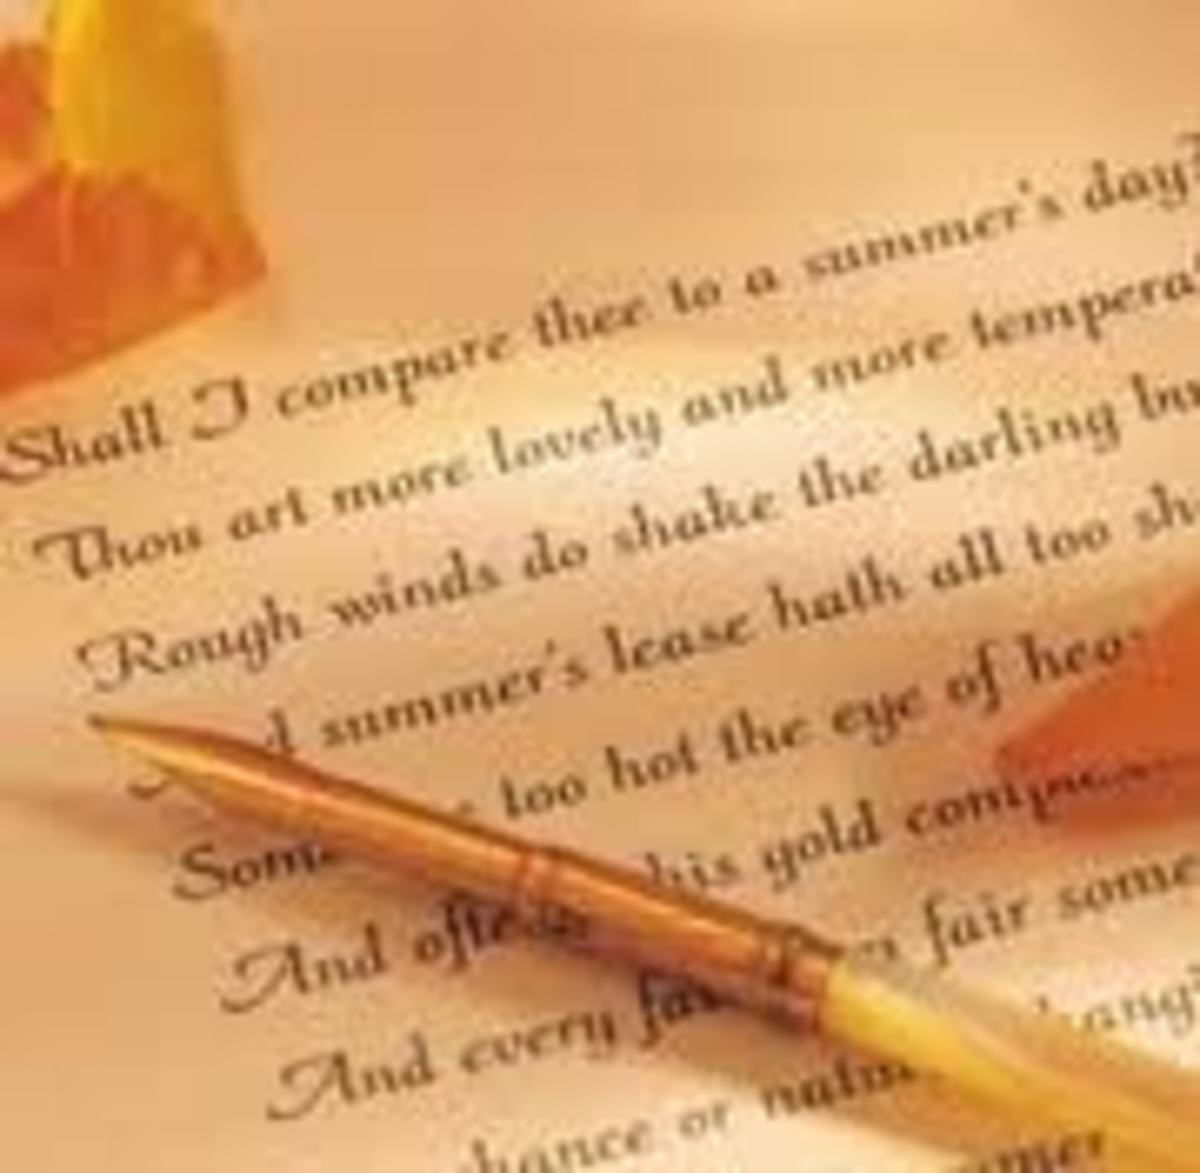 Sonnet 18 - Shakespeare